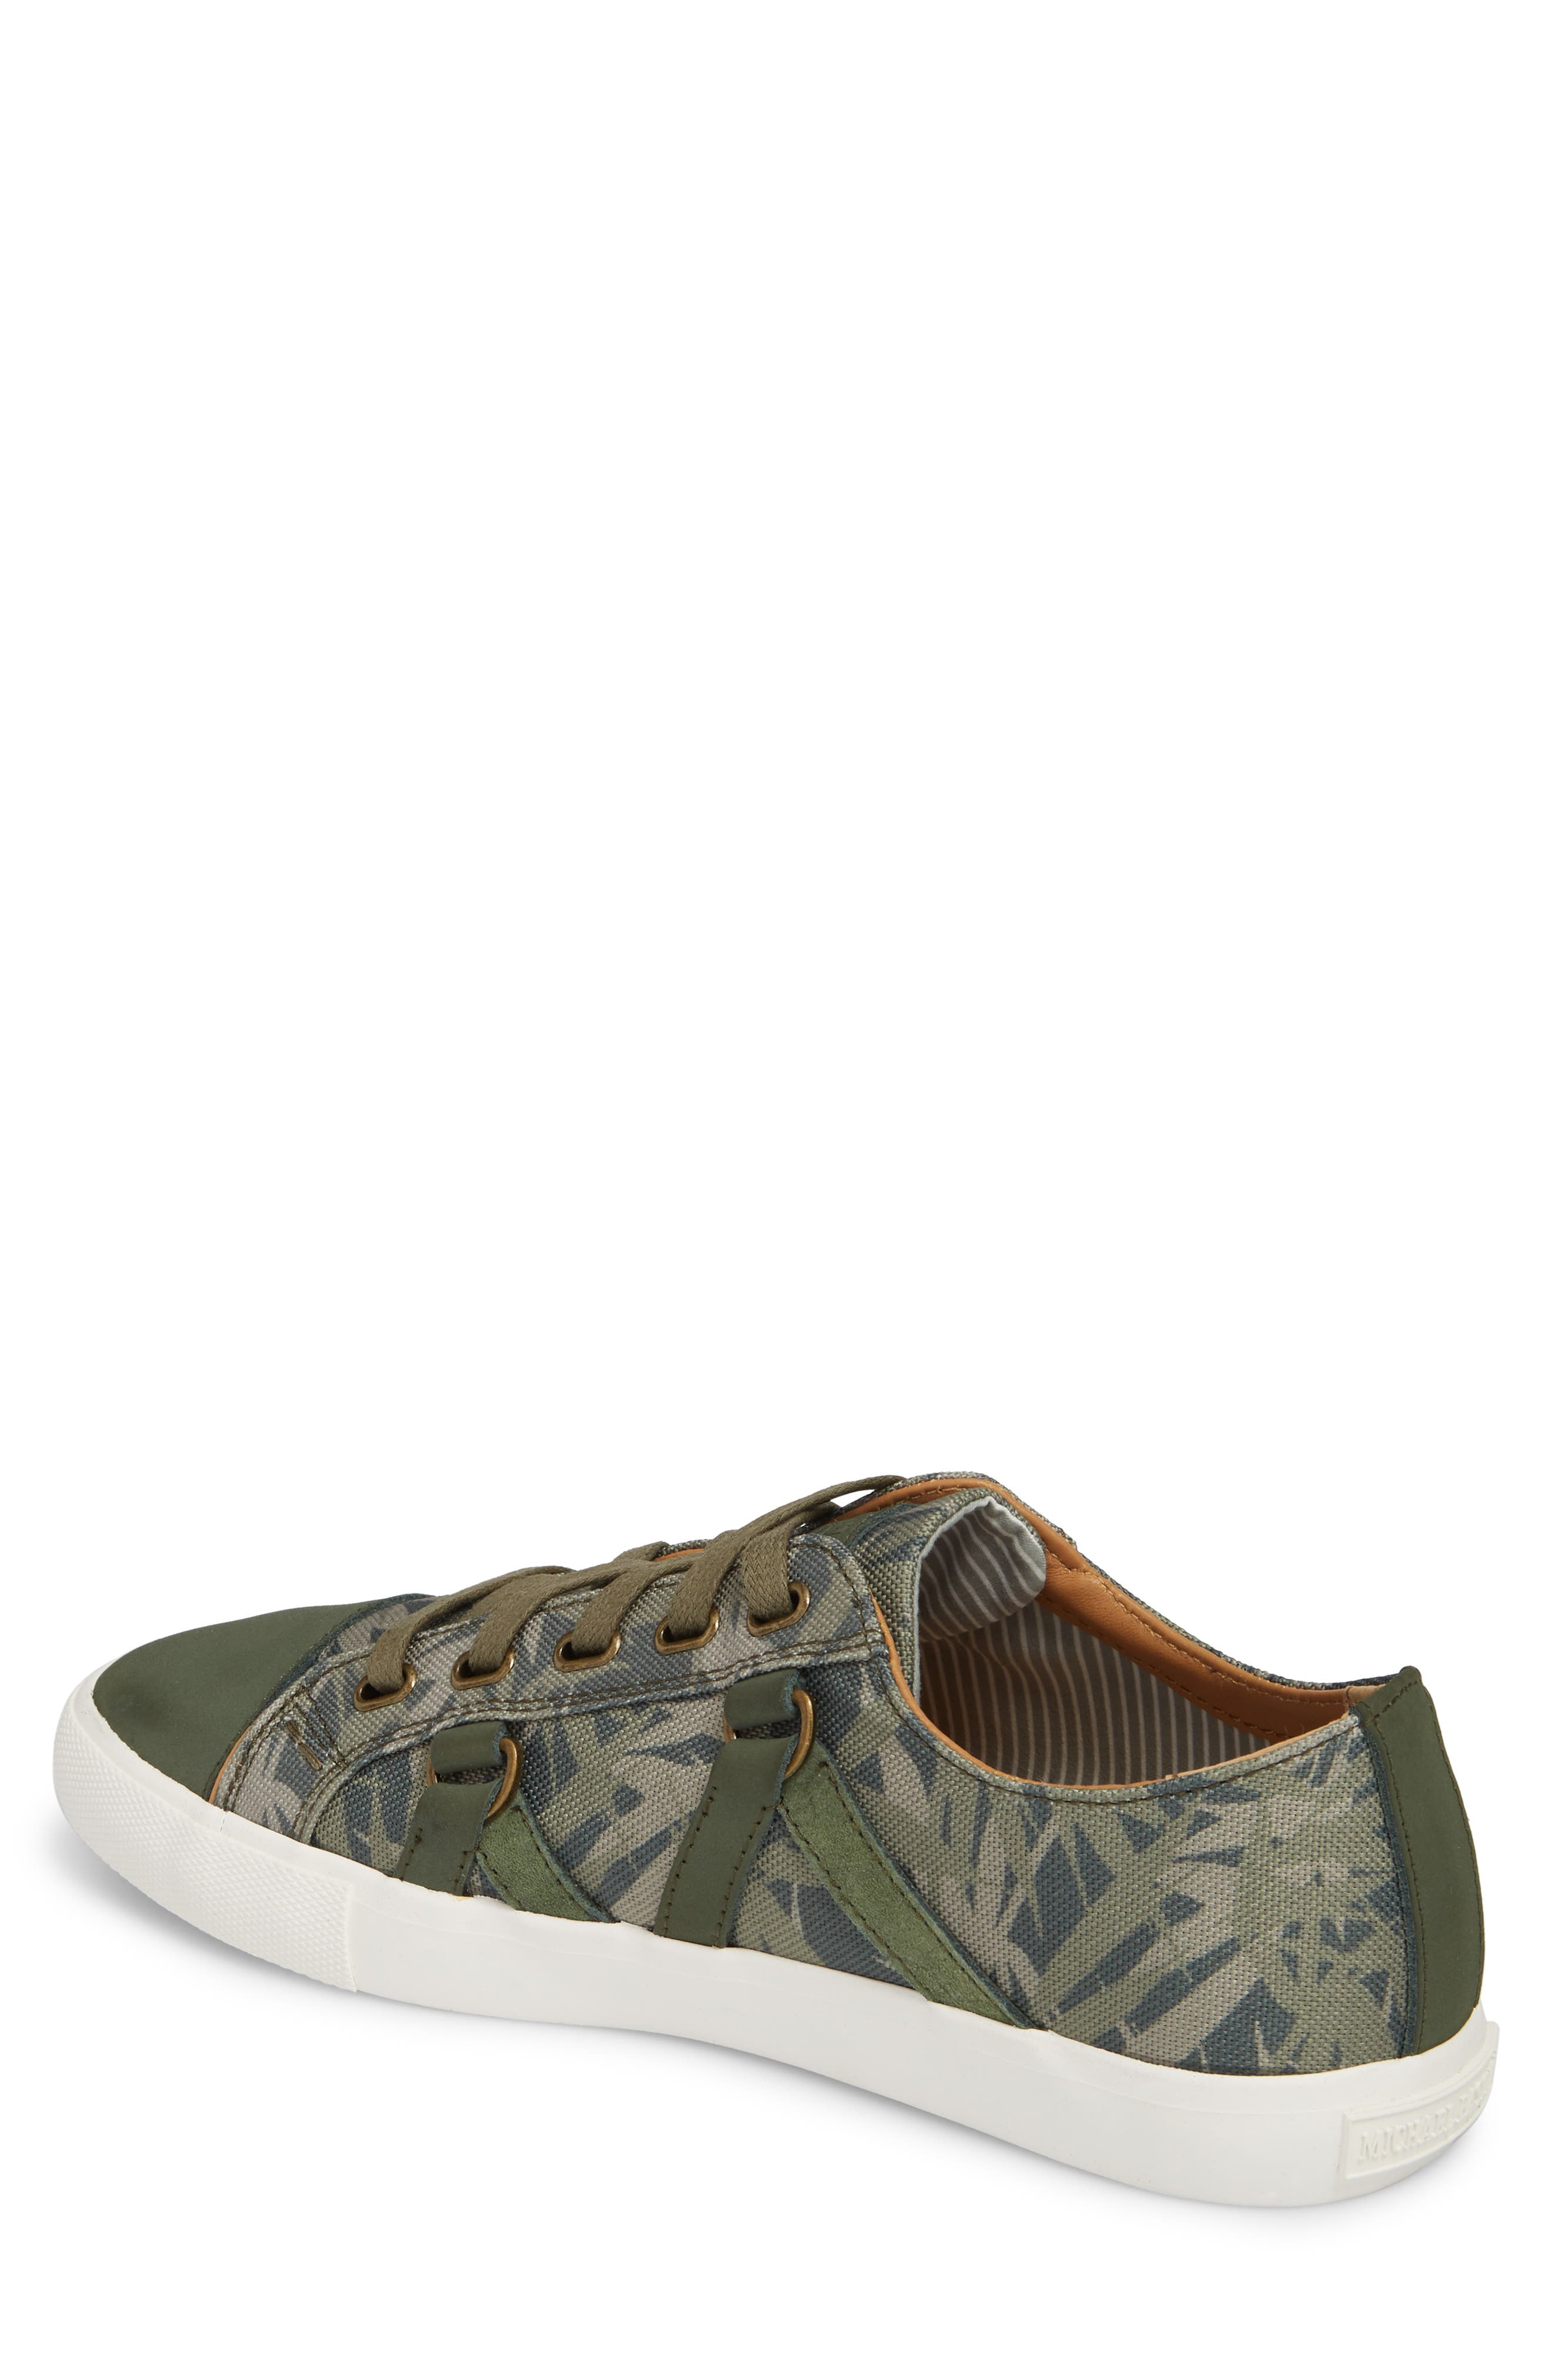 Signature Low Top Sneaker,                             Alternate thumbnail 2, color,                             Bamboo Canvas